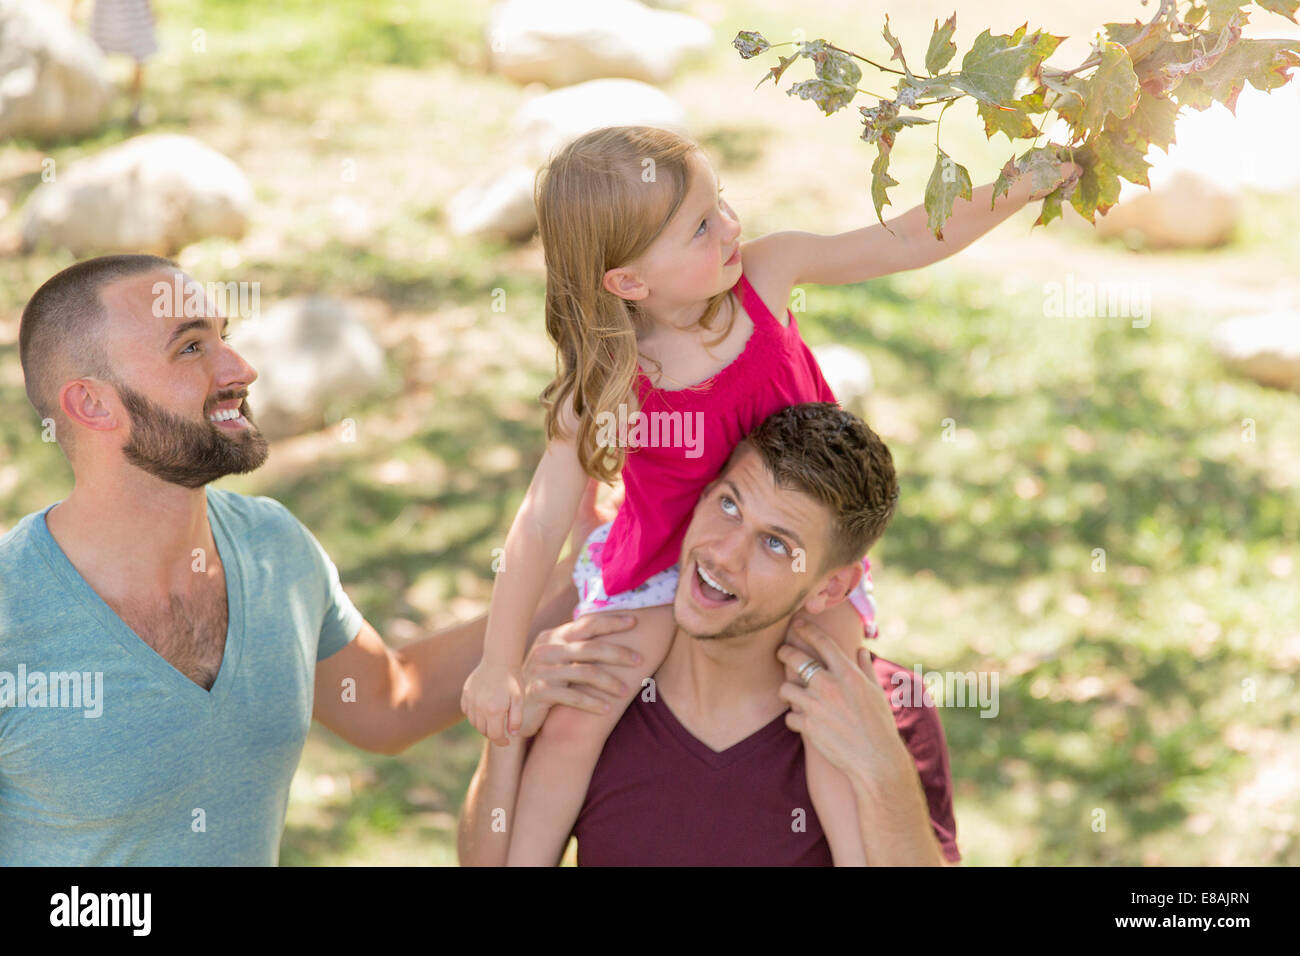 Young girl sitting on fathers shoulders reaching for tree leaf in park - Stock Image